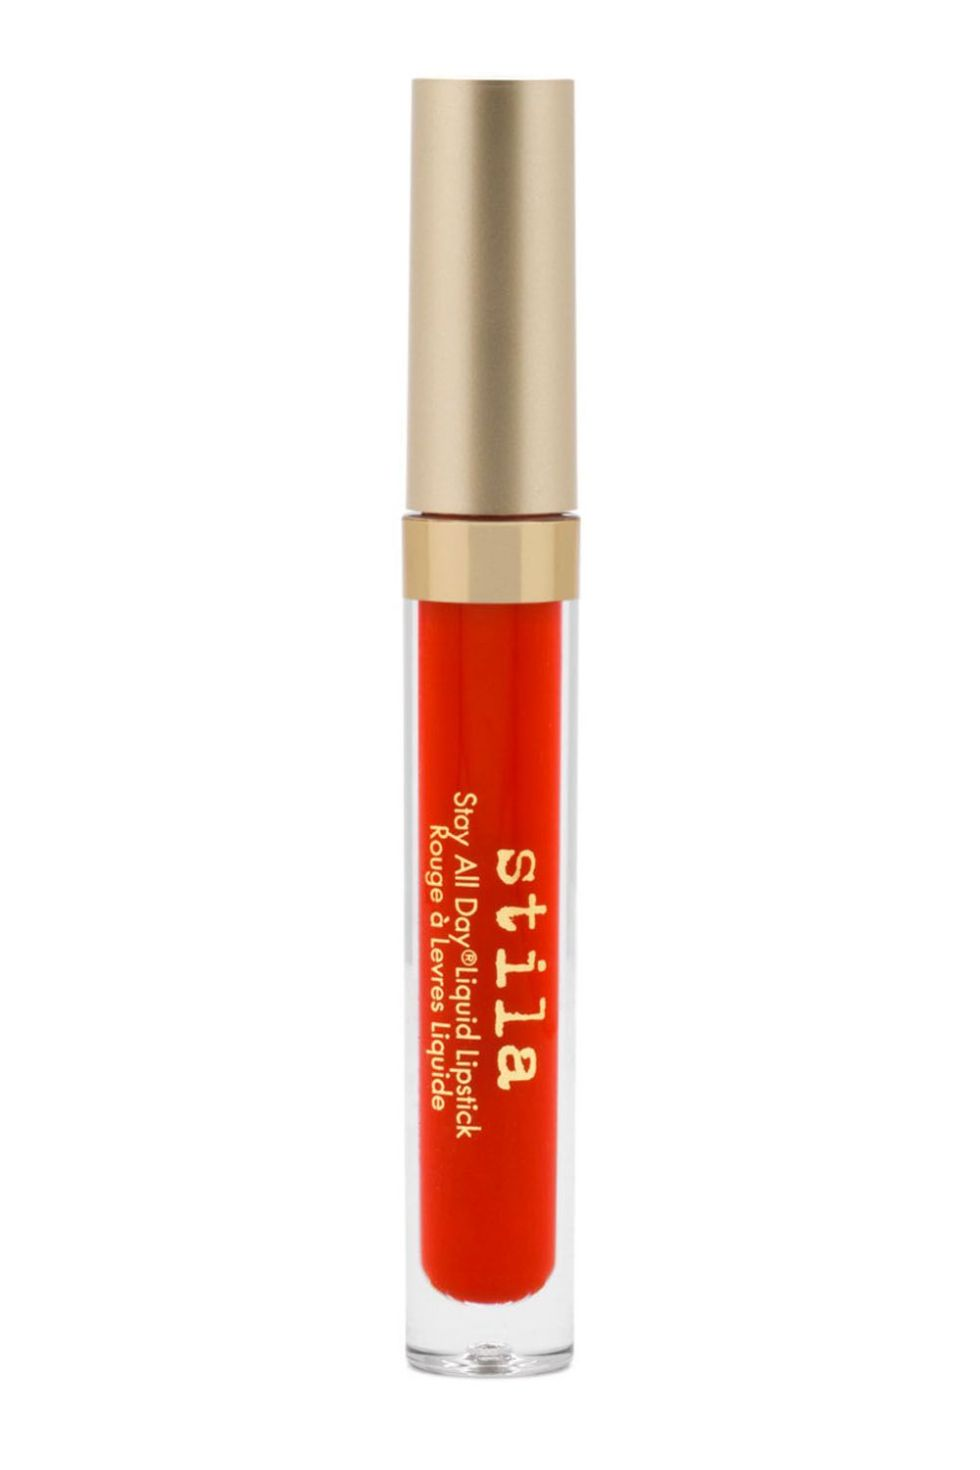 Rouge à lèvres liquide Stila Stay All Day